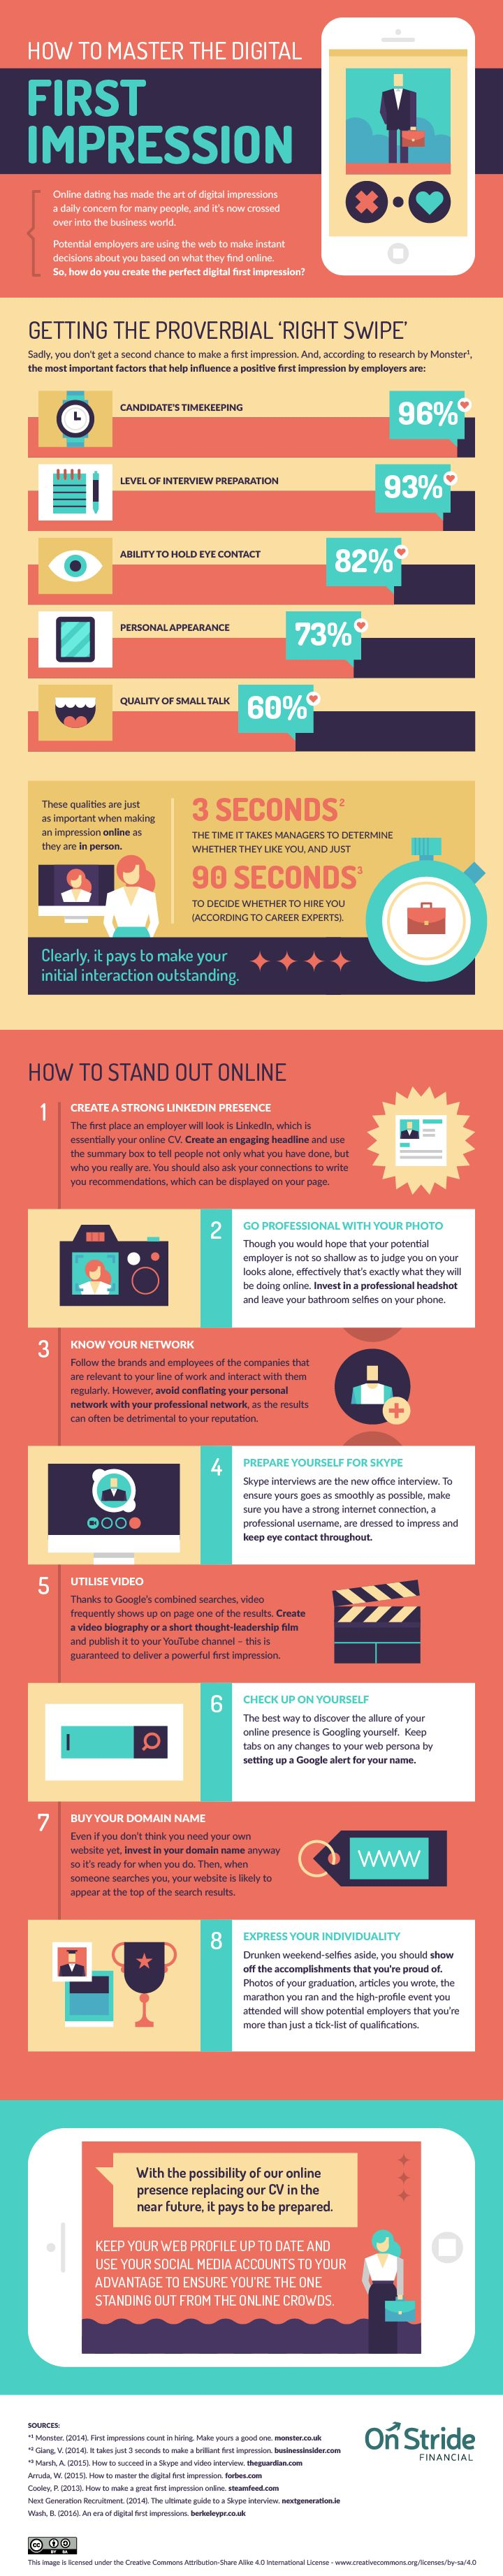 Infographic: How To Make An Excellent First Impression Online - DesignTAXI.com